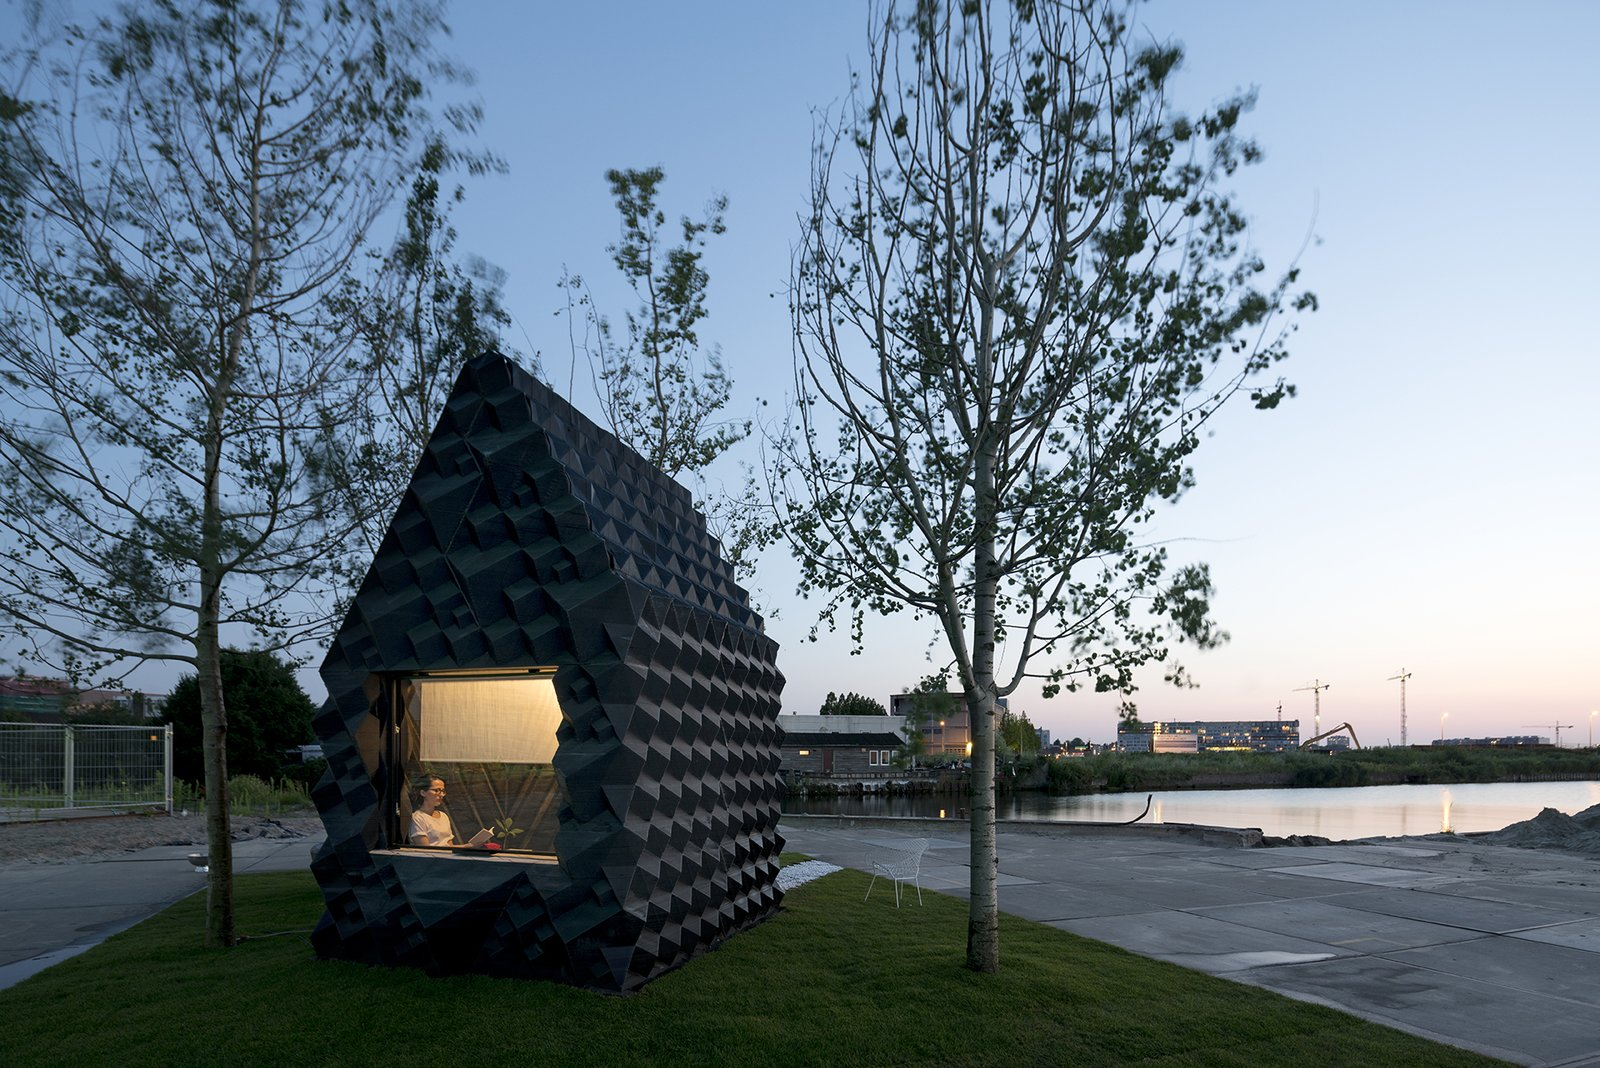 Exterior and Cabin Building Type To rent the cabin for a short stay, intrepid guests can contact Dus Architects at info@houseofdus.com  Photo: Ossip van Duivenbode  Photo 19 of 19 in Stay in This 3D-Printed Tiny House from Book a Stay in This 3D-Printed Tiny House